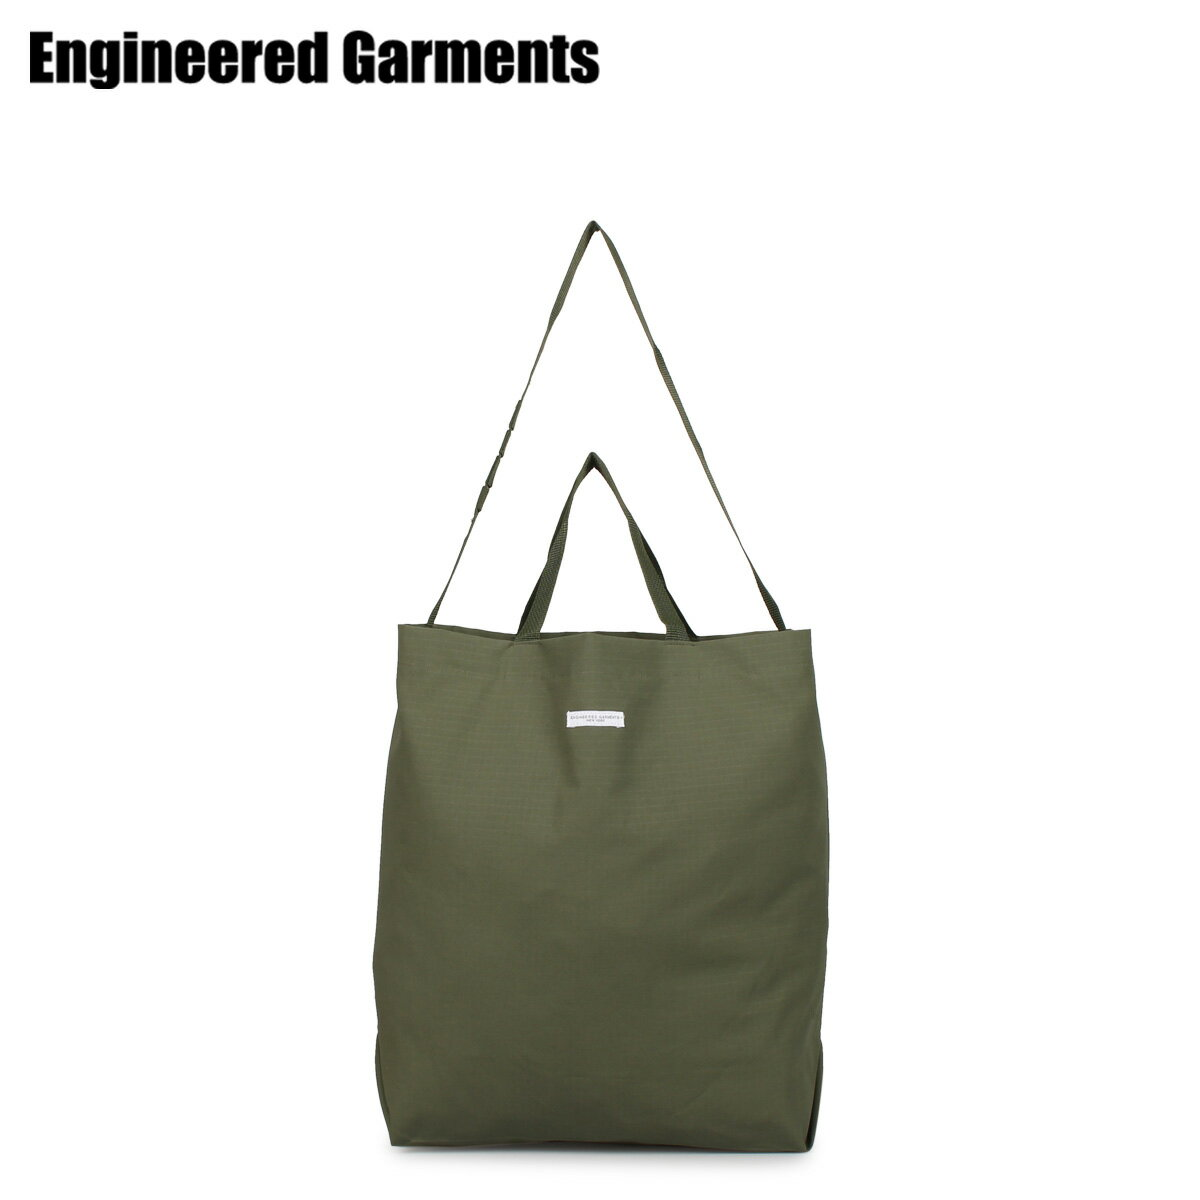 男女兼用バッグ, トートバッグ ENGINEERED GARMENTS 2WAY CARRY ALL TOTE 20S1H015 326